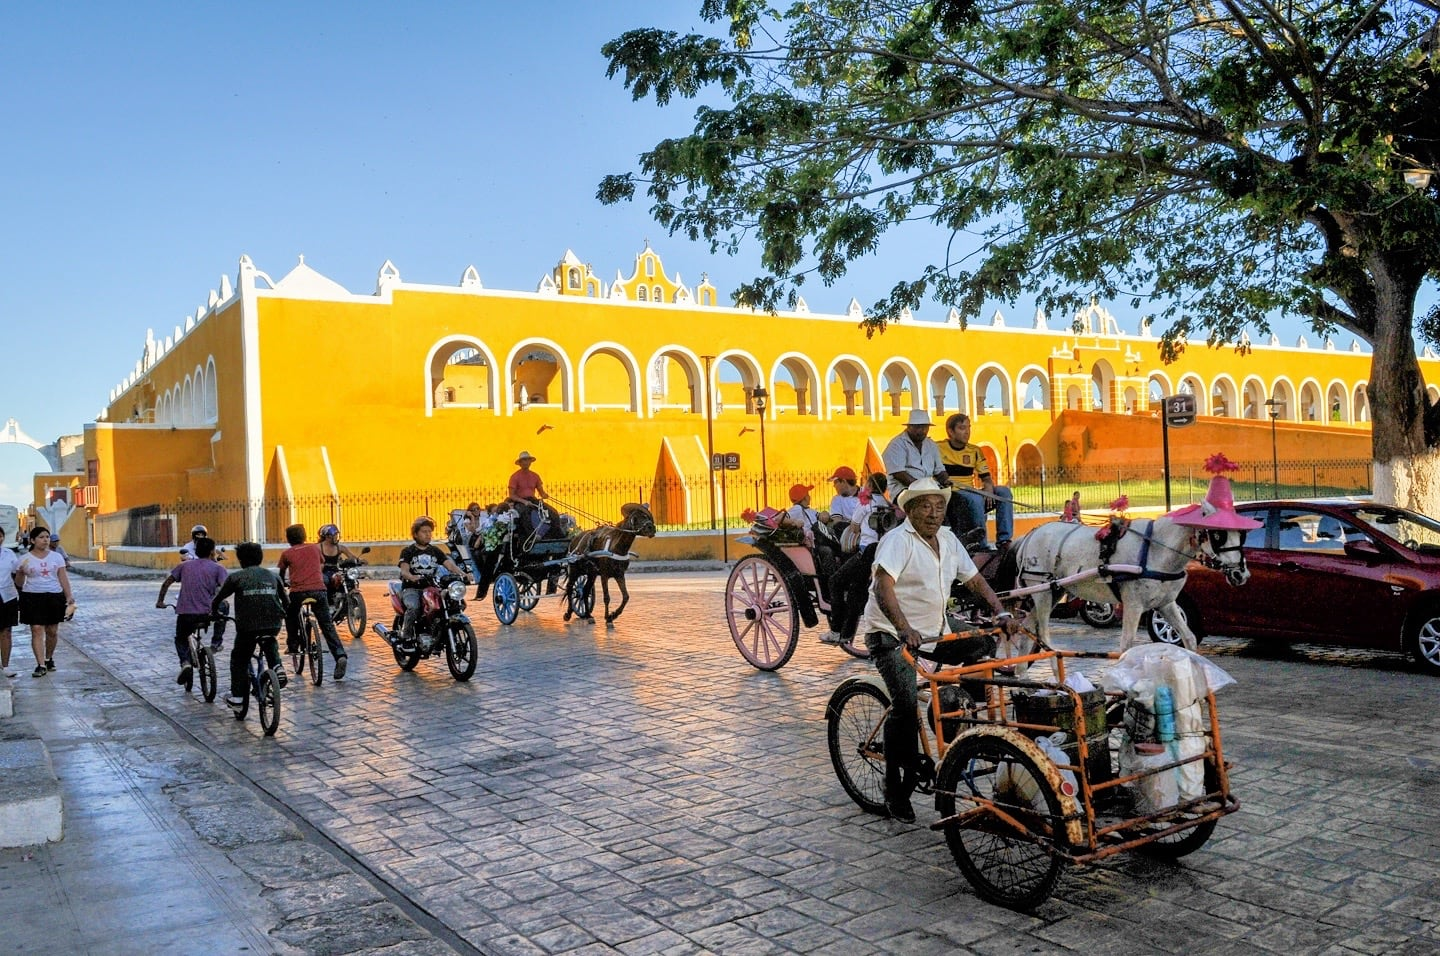 Horse drawn carriage in Izamal Mexico